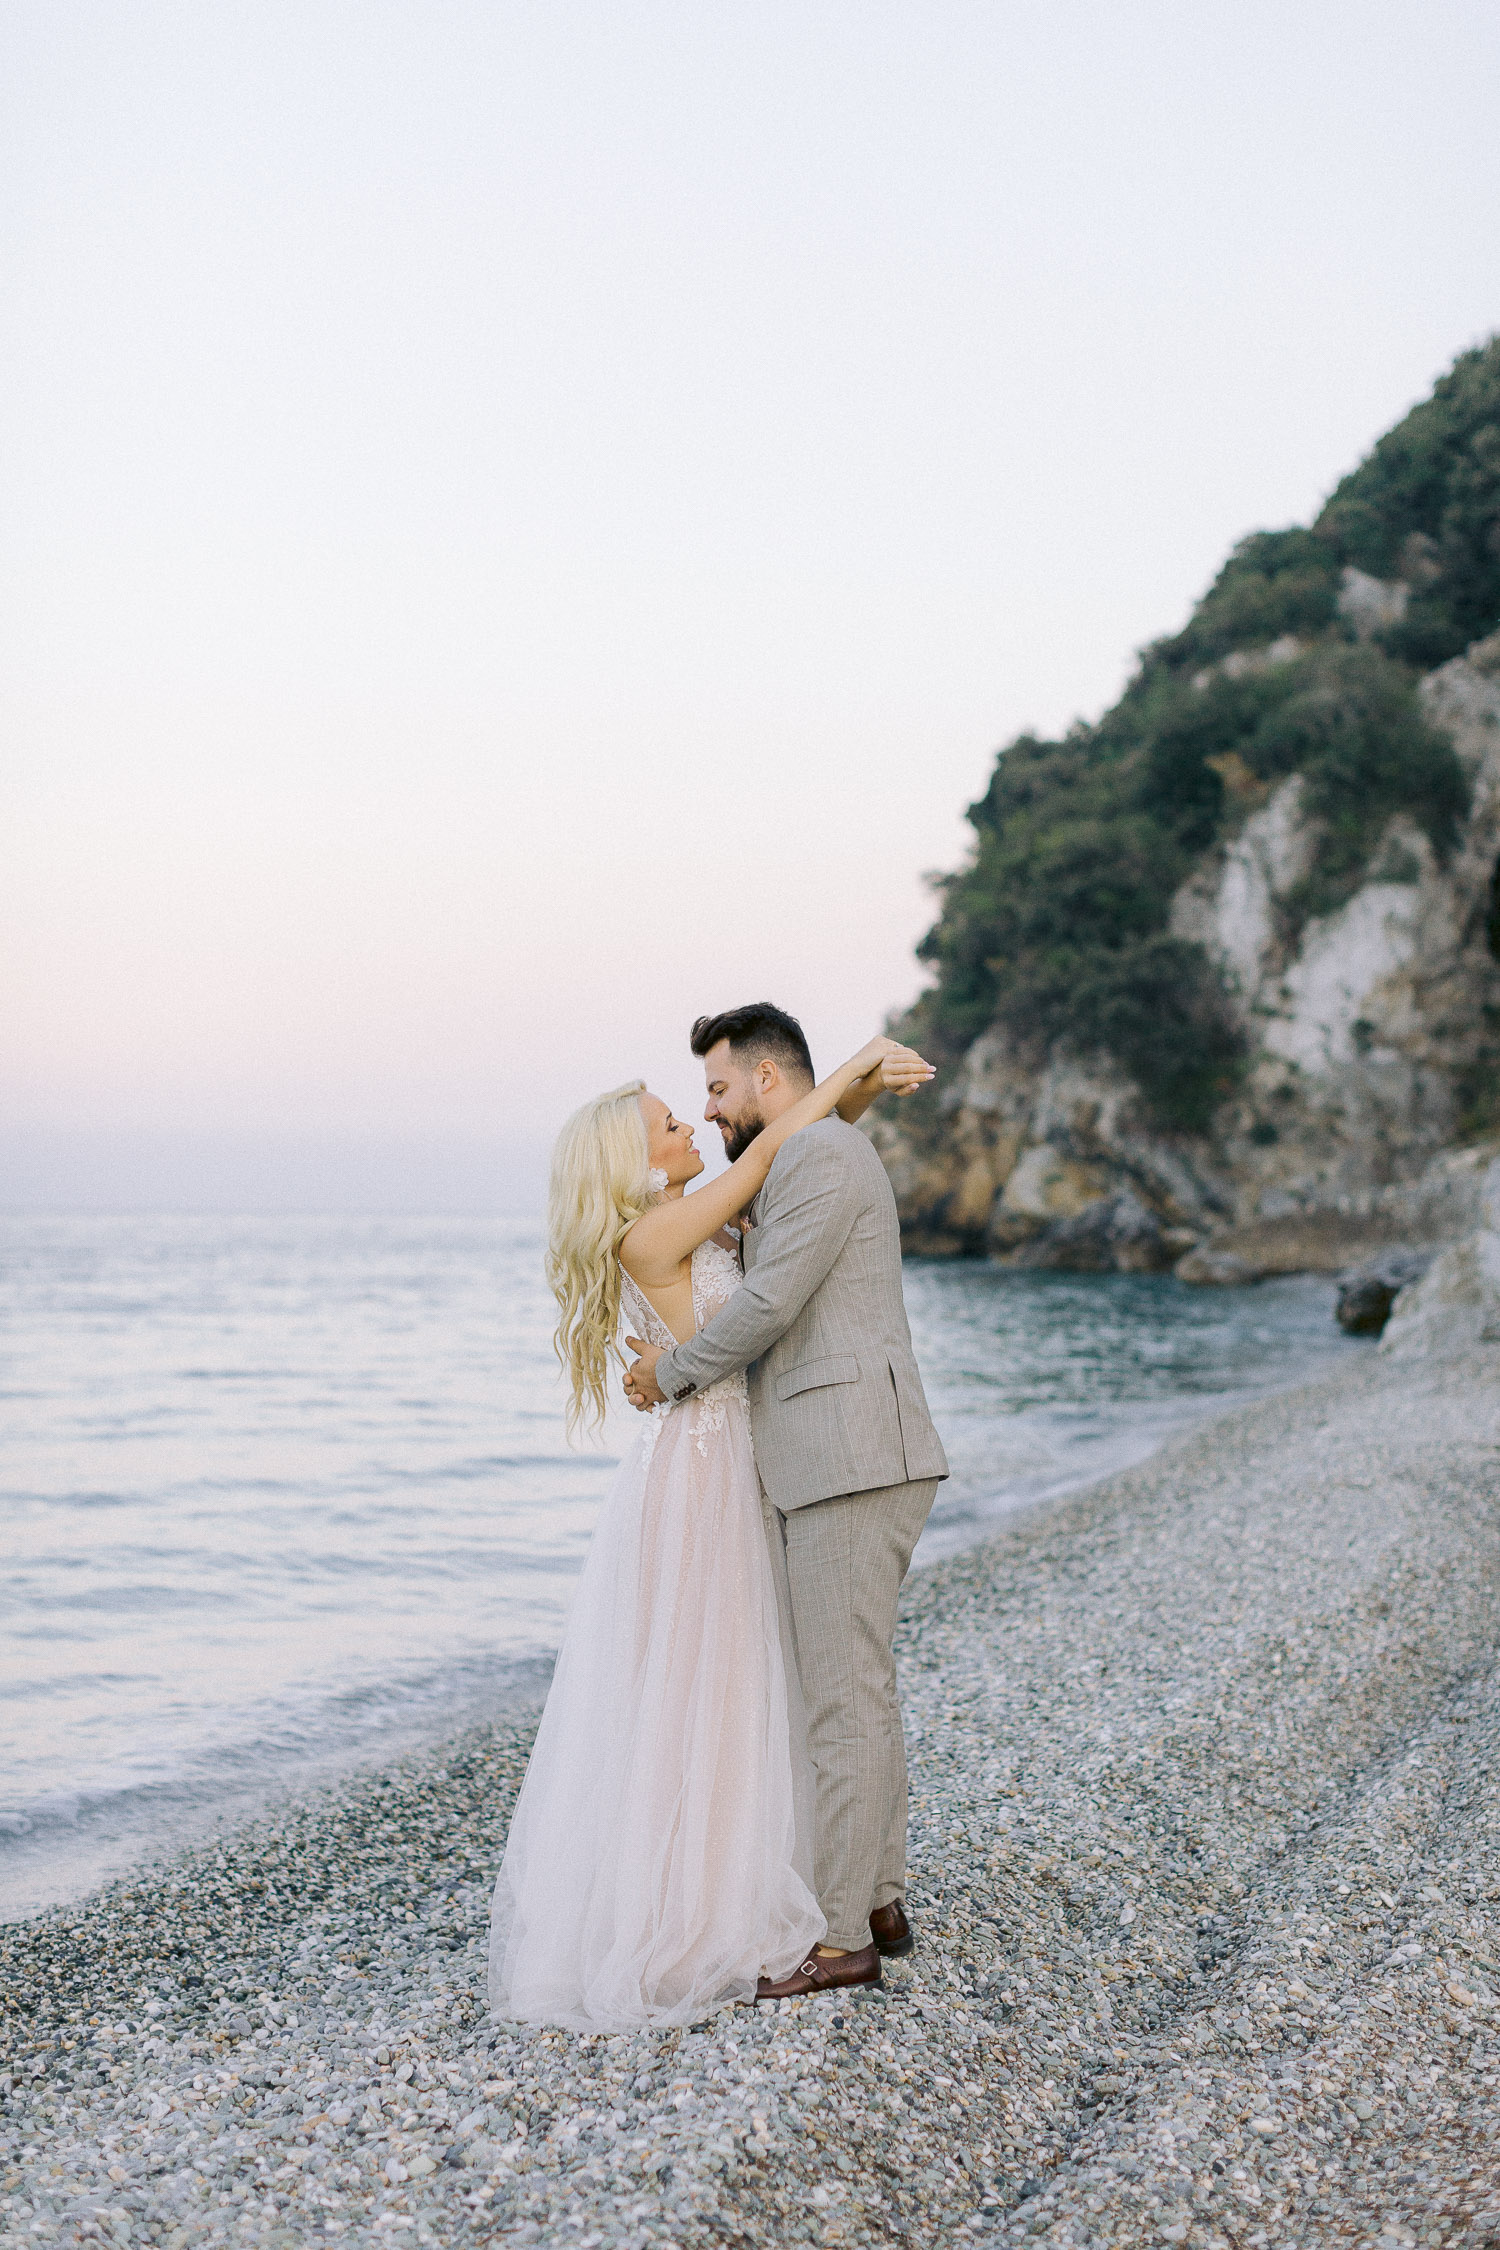 romantic coastal wedding in Greece bride and groom sweet moment